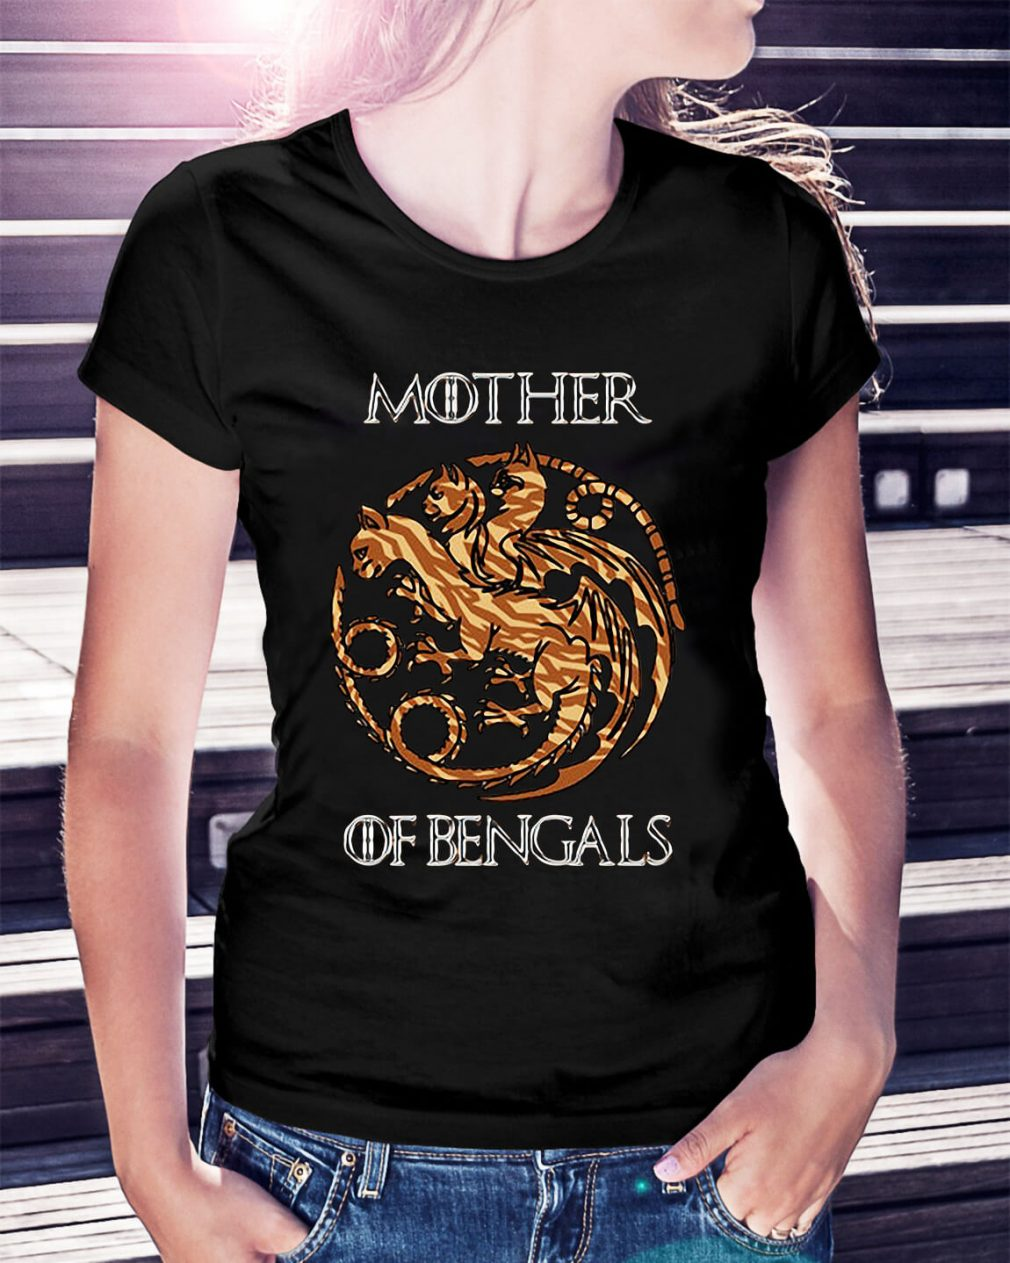 Game of Thrones mother of Bengals Ladies Tee